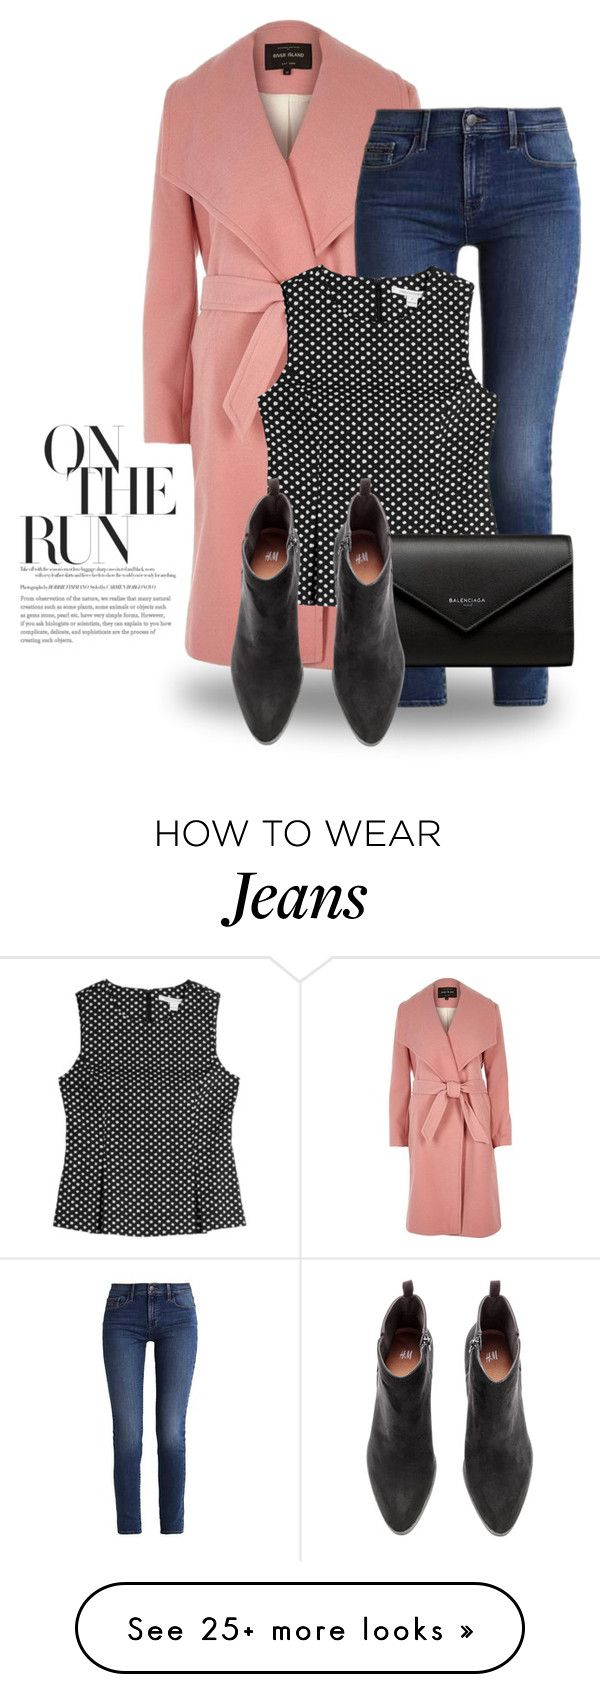 """""""Hey, Girl: Pretty Pink Coats 2855"""" by boxthoughts on Polyvore featuring River Island, Calvin Klein, Diane Von Furstenberg, Balenciaga and pinkcoats"""